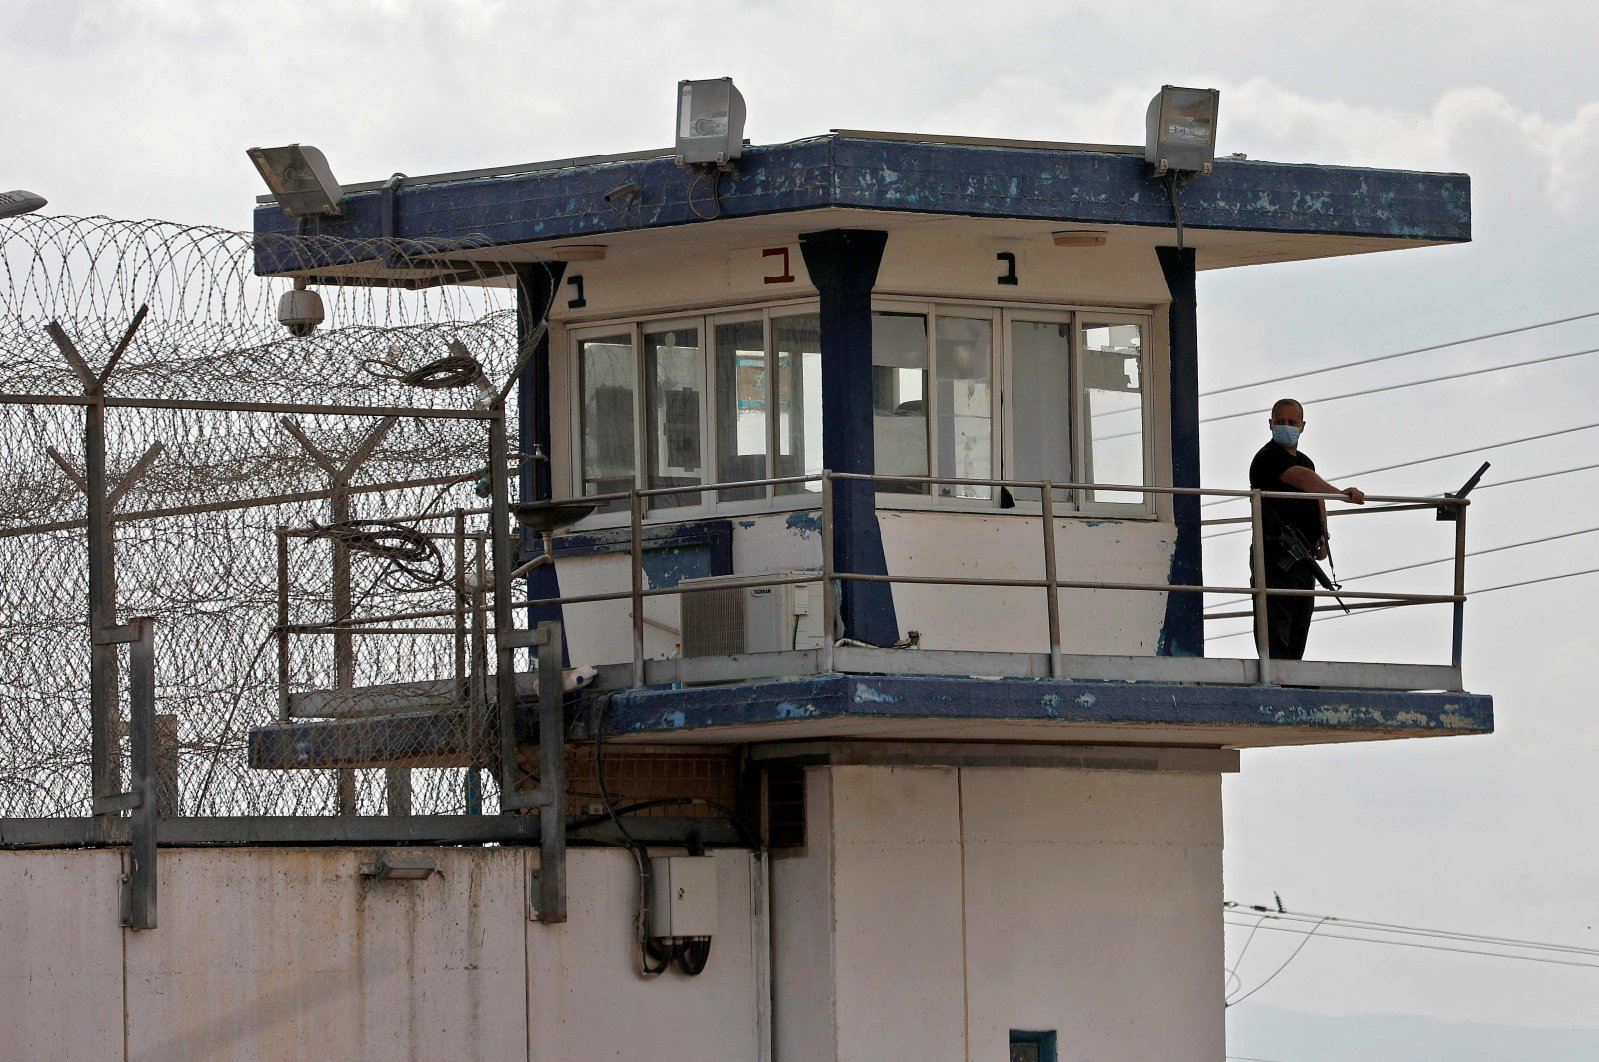 A police officer keeps watch from an observation tower at the Gilboa prison, northern Israel, Sept. 6, 2021. (AFP Photo)